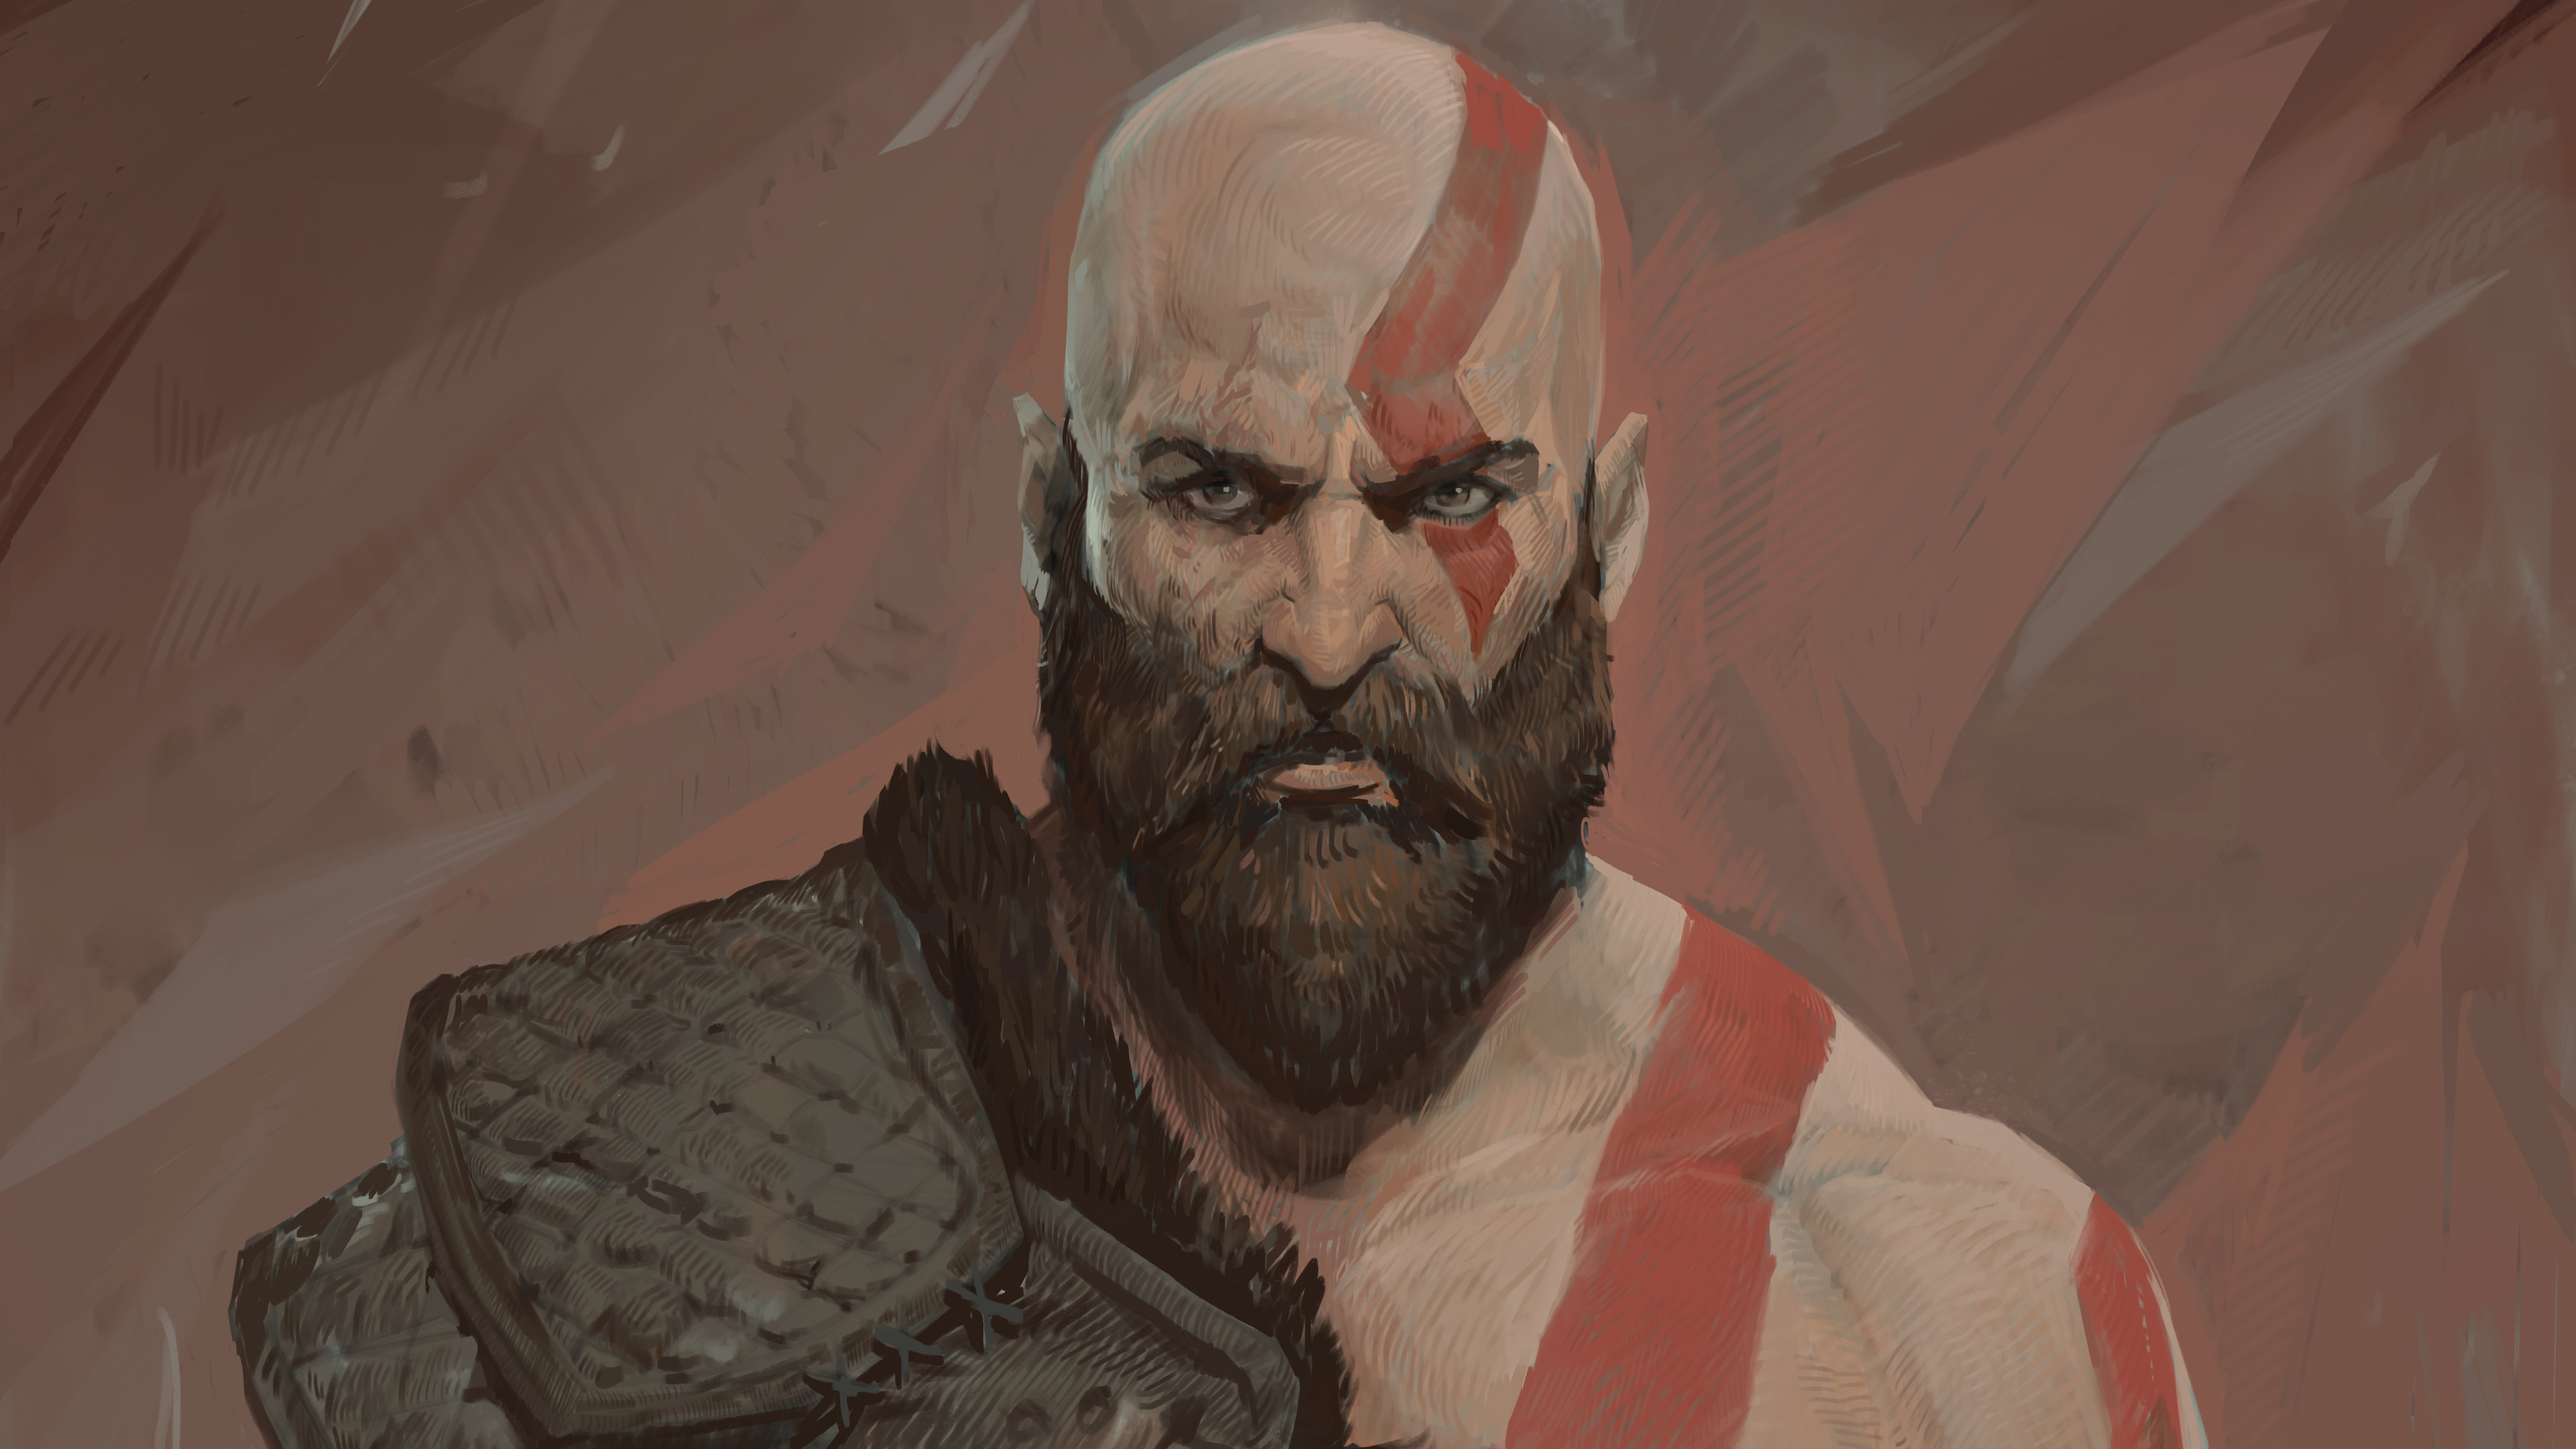 kratos artwork 1568056191 - Kratos Artwork - kratos wallpapers, hd-wallpapers, games wallpapers, deviantart wallpapers, artwork wallpapers, 5k wallpapers, 4k-wallpapers